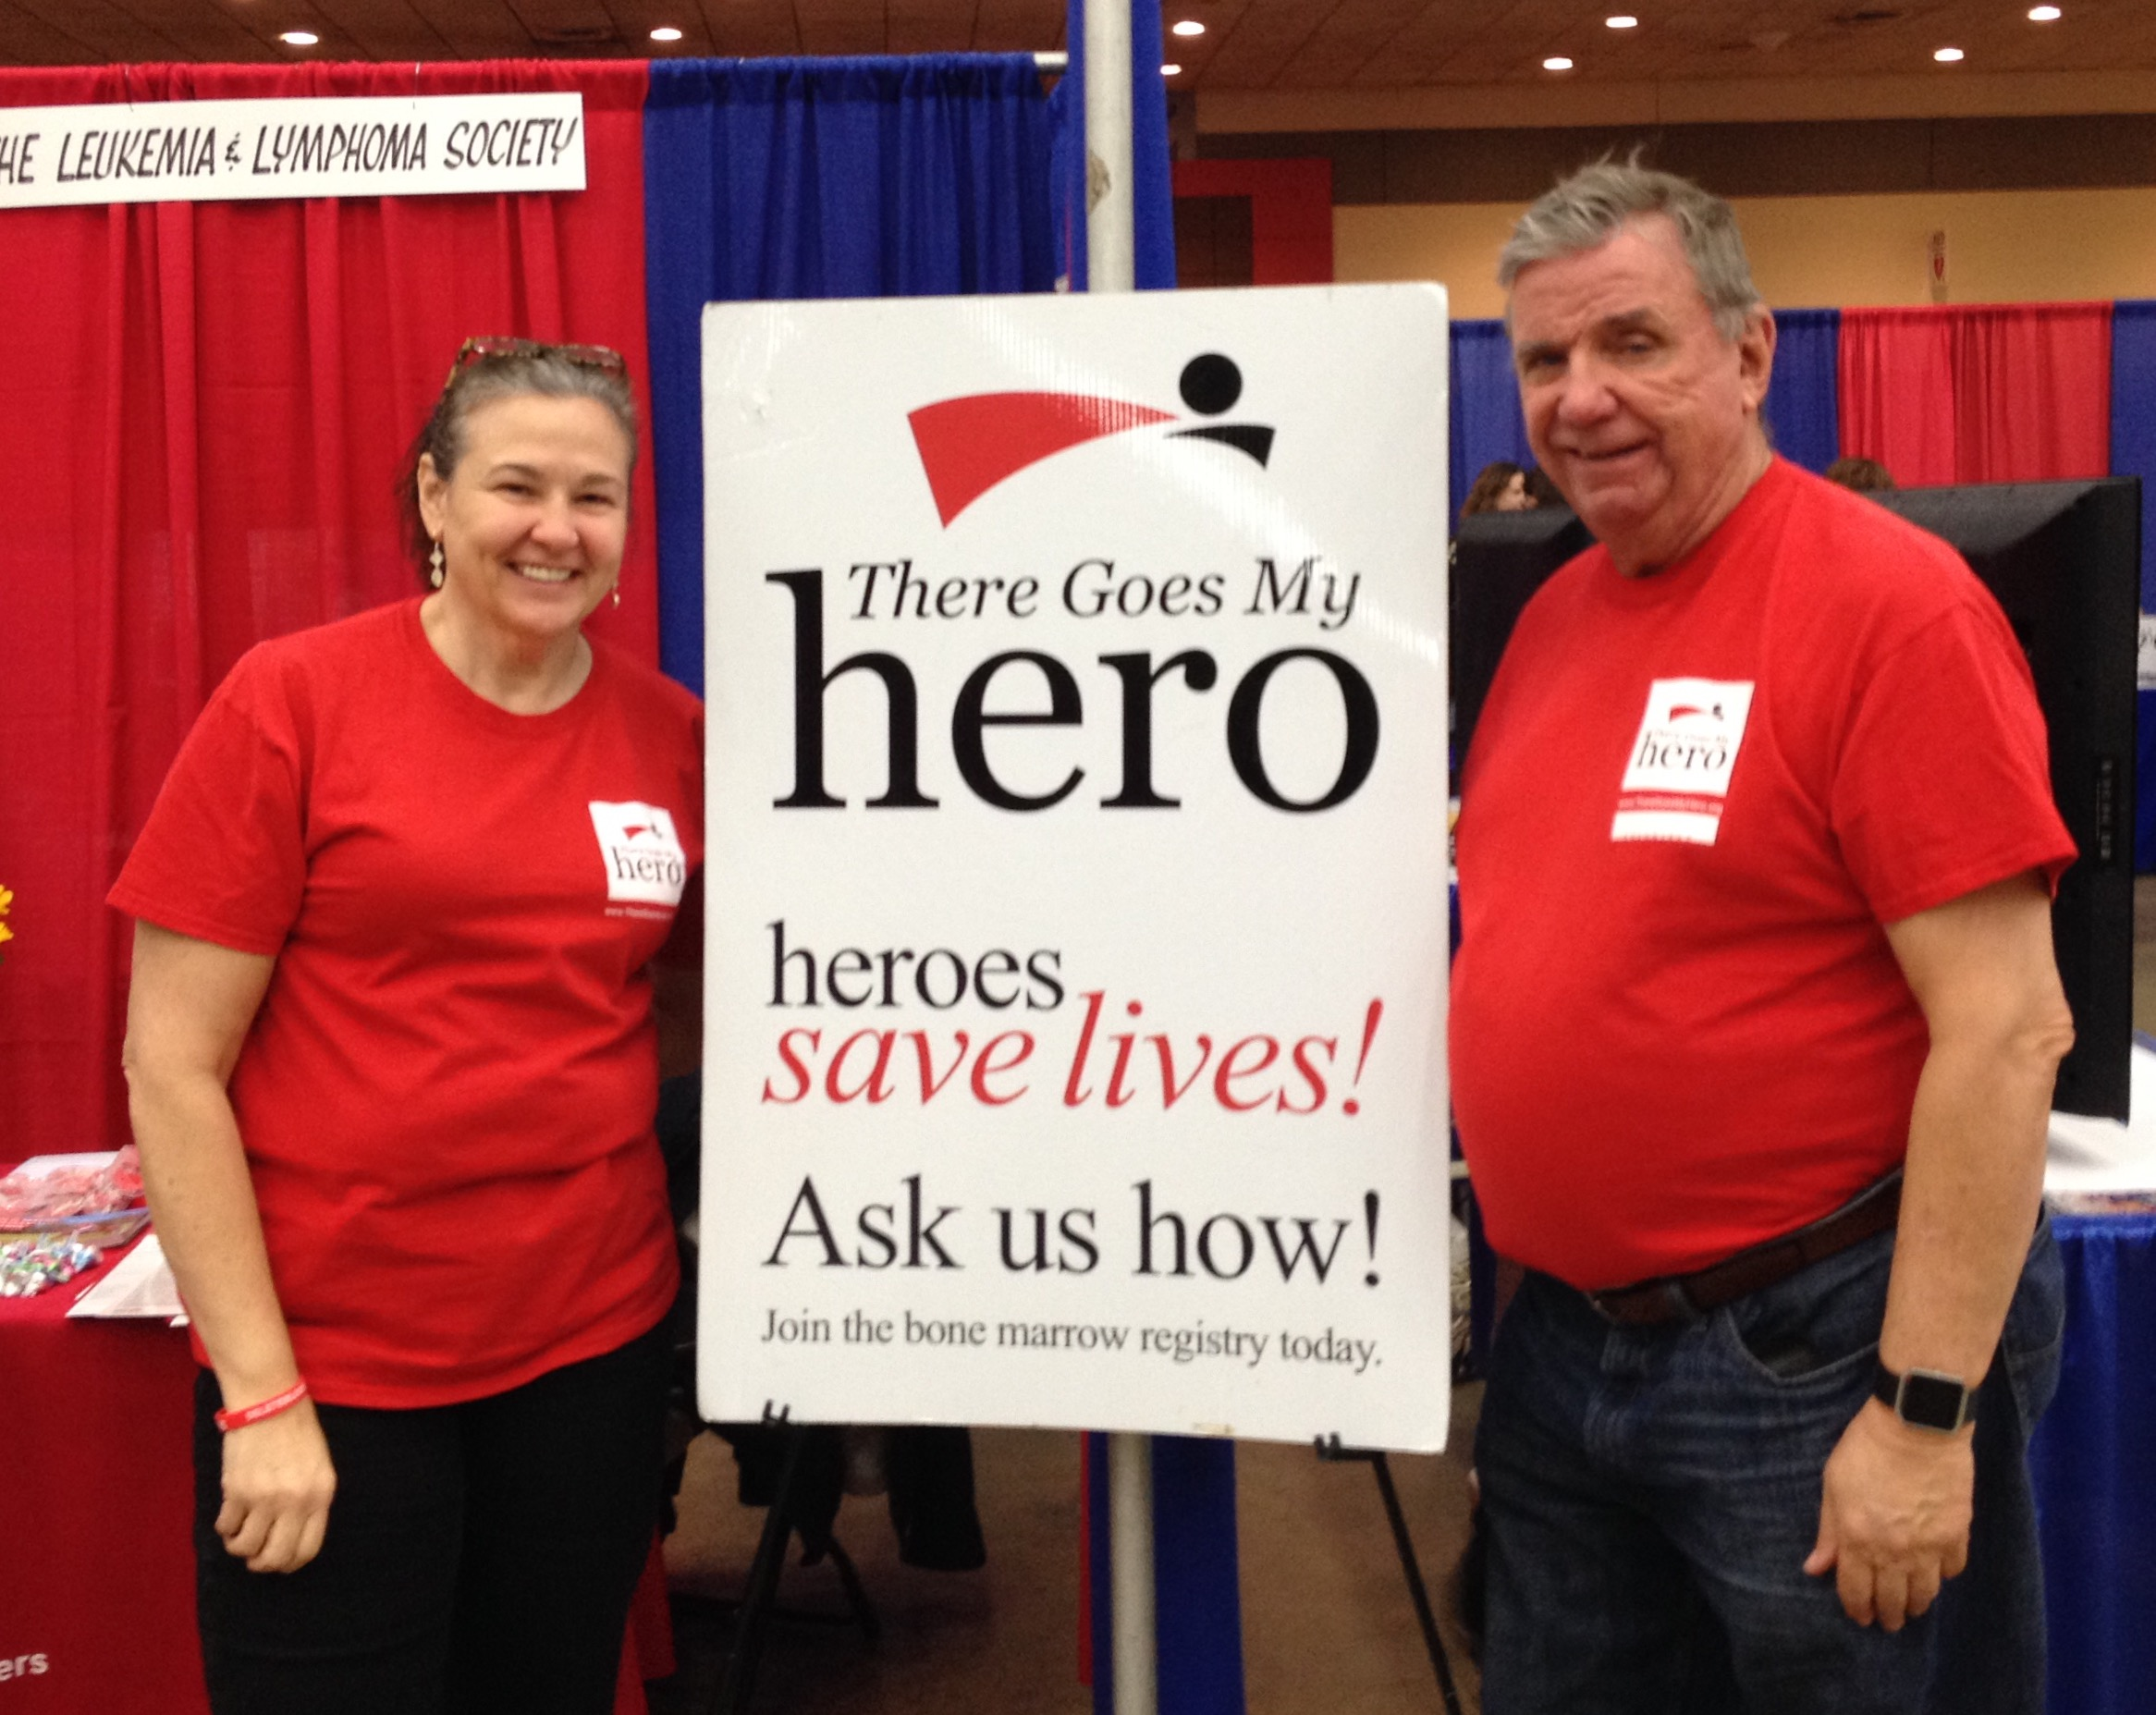 Mike's mom and dad volunteering at a bone marrow donor registry drive.